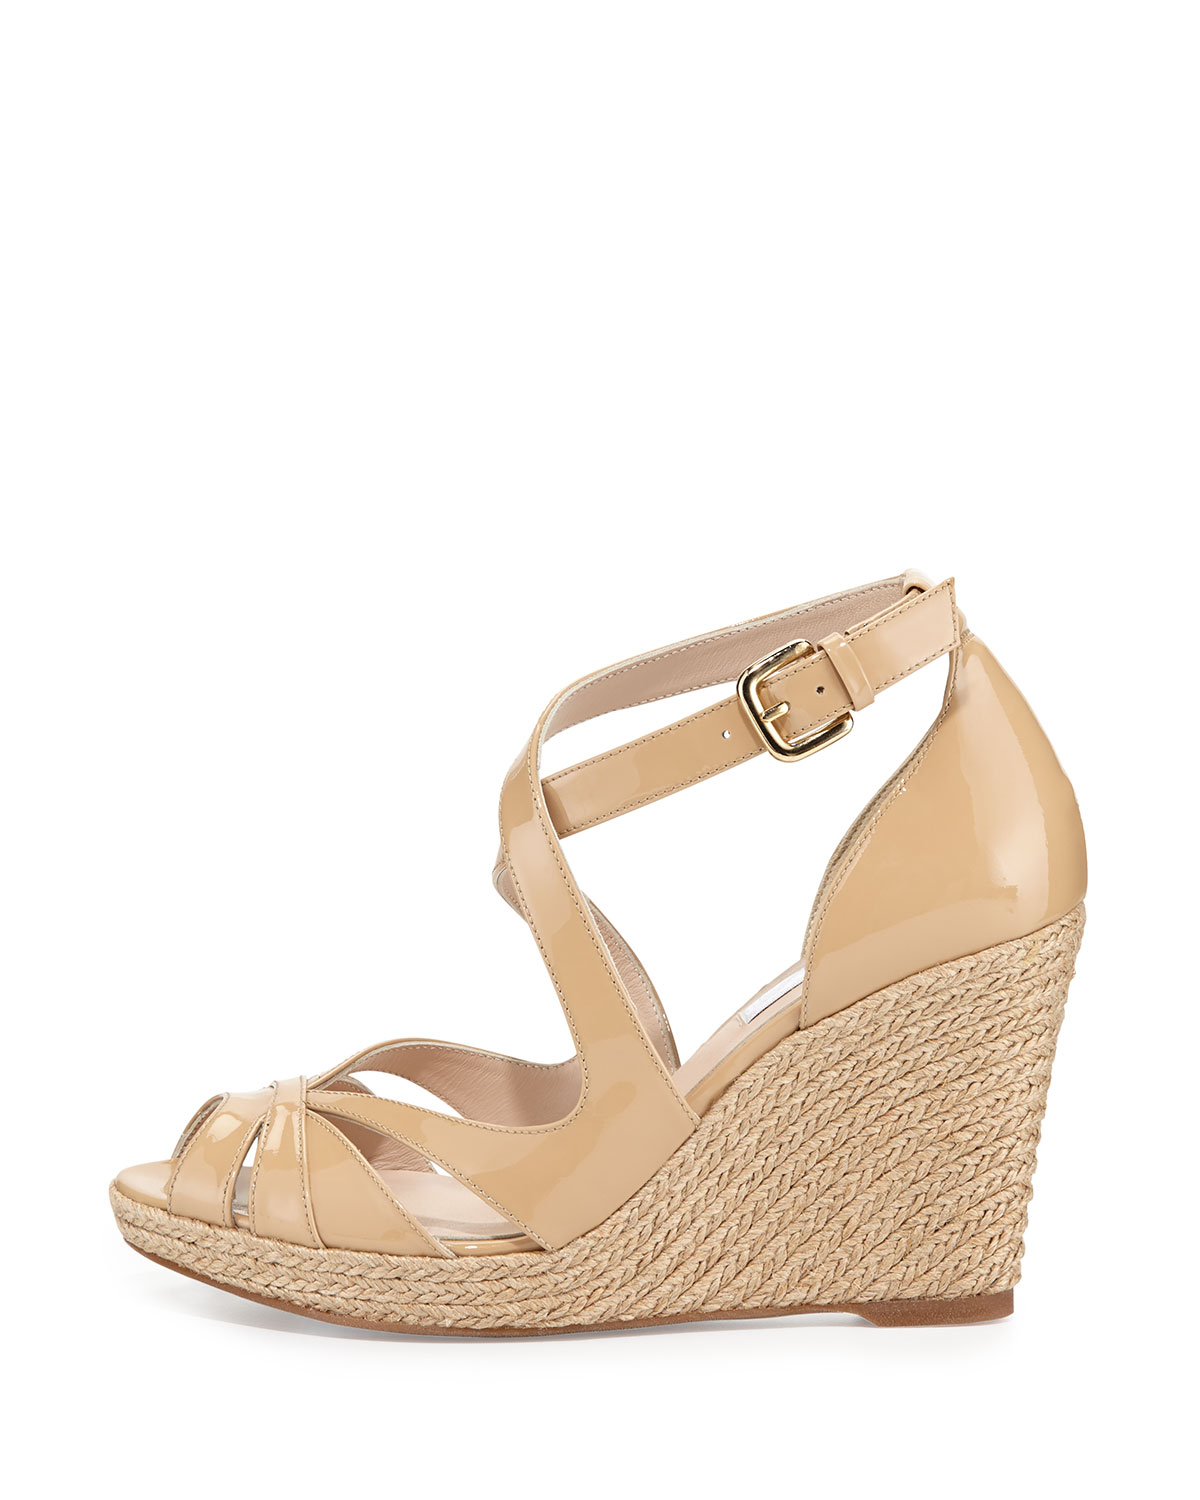 a4eaf8cb9fbe Lyst - L.K.Bennett Maggie Patent Espadrille Sandal in Brown